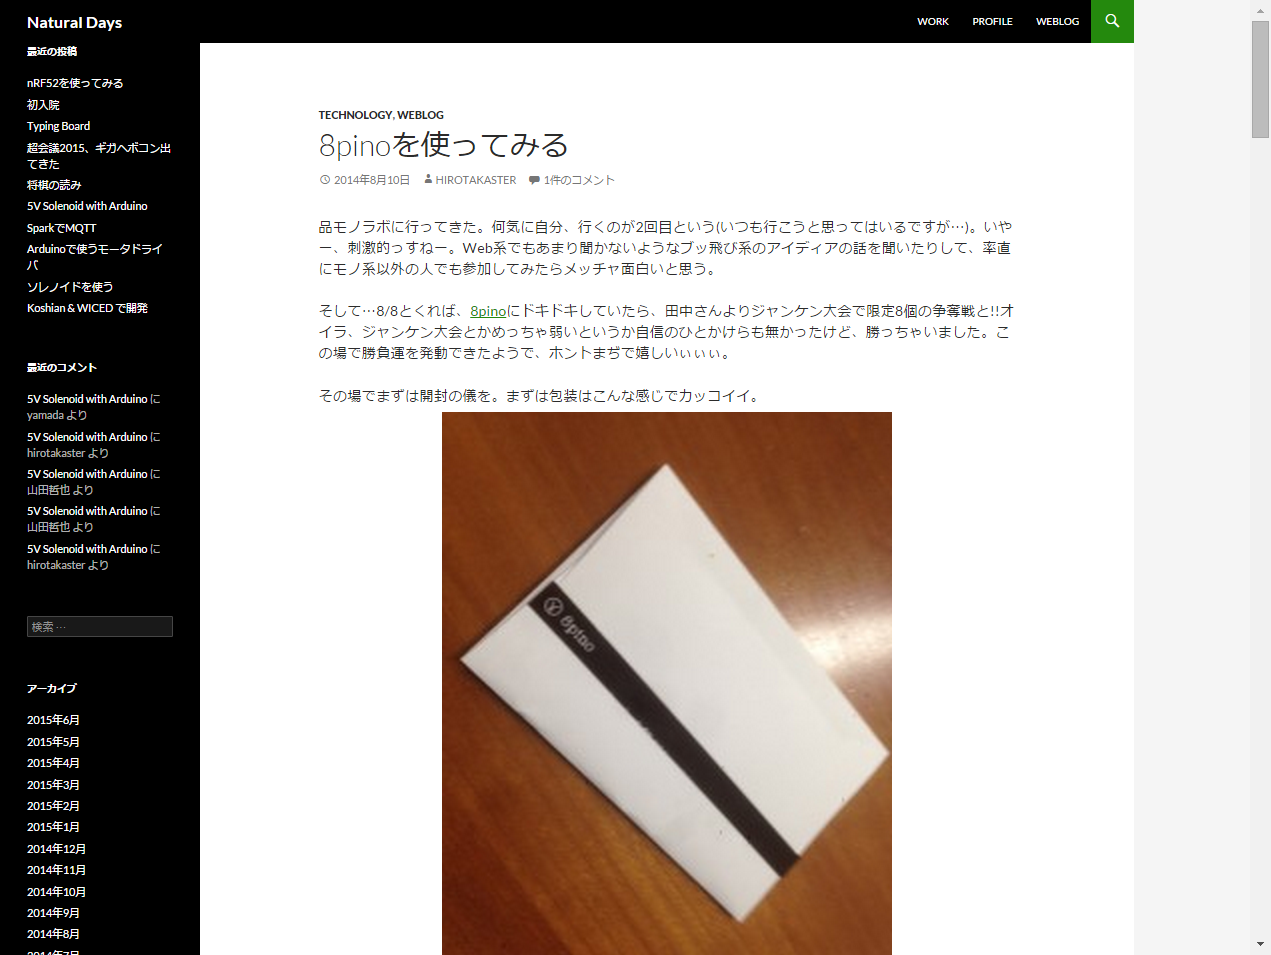 QS_20150626-183159.png